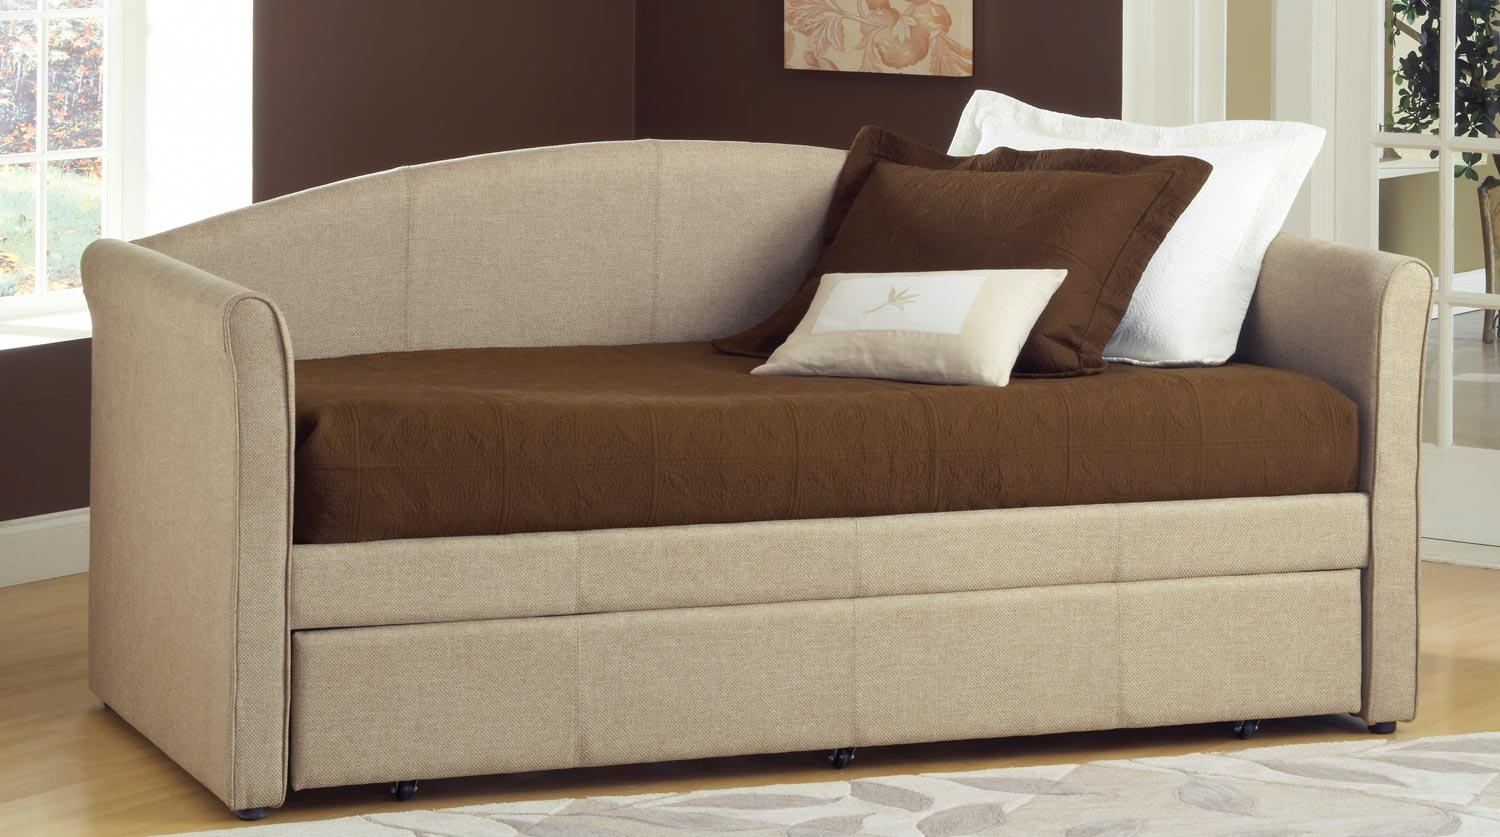 Sofas Center : Sofa With Twin Trundle Futon Bedbuy Trundlefuton Inside Sofa Beds With Trundle (Image 18 of 20)